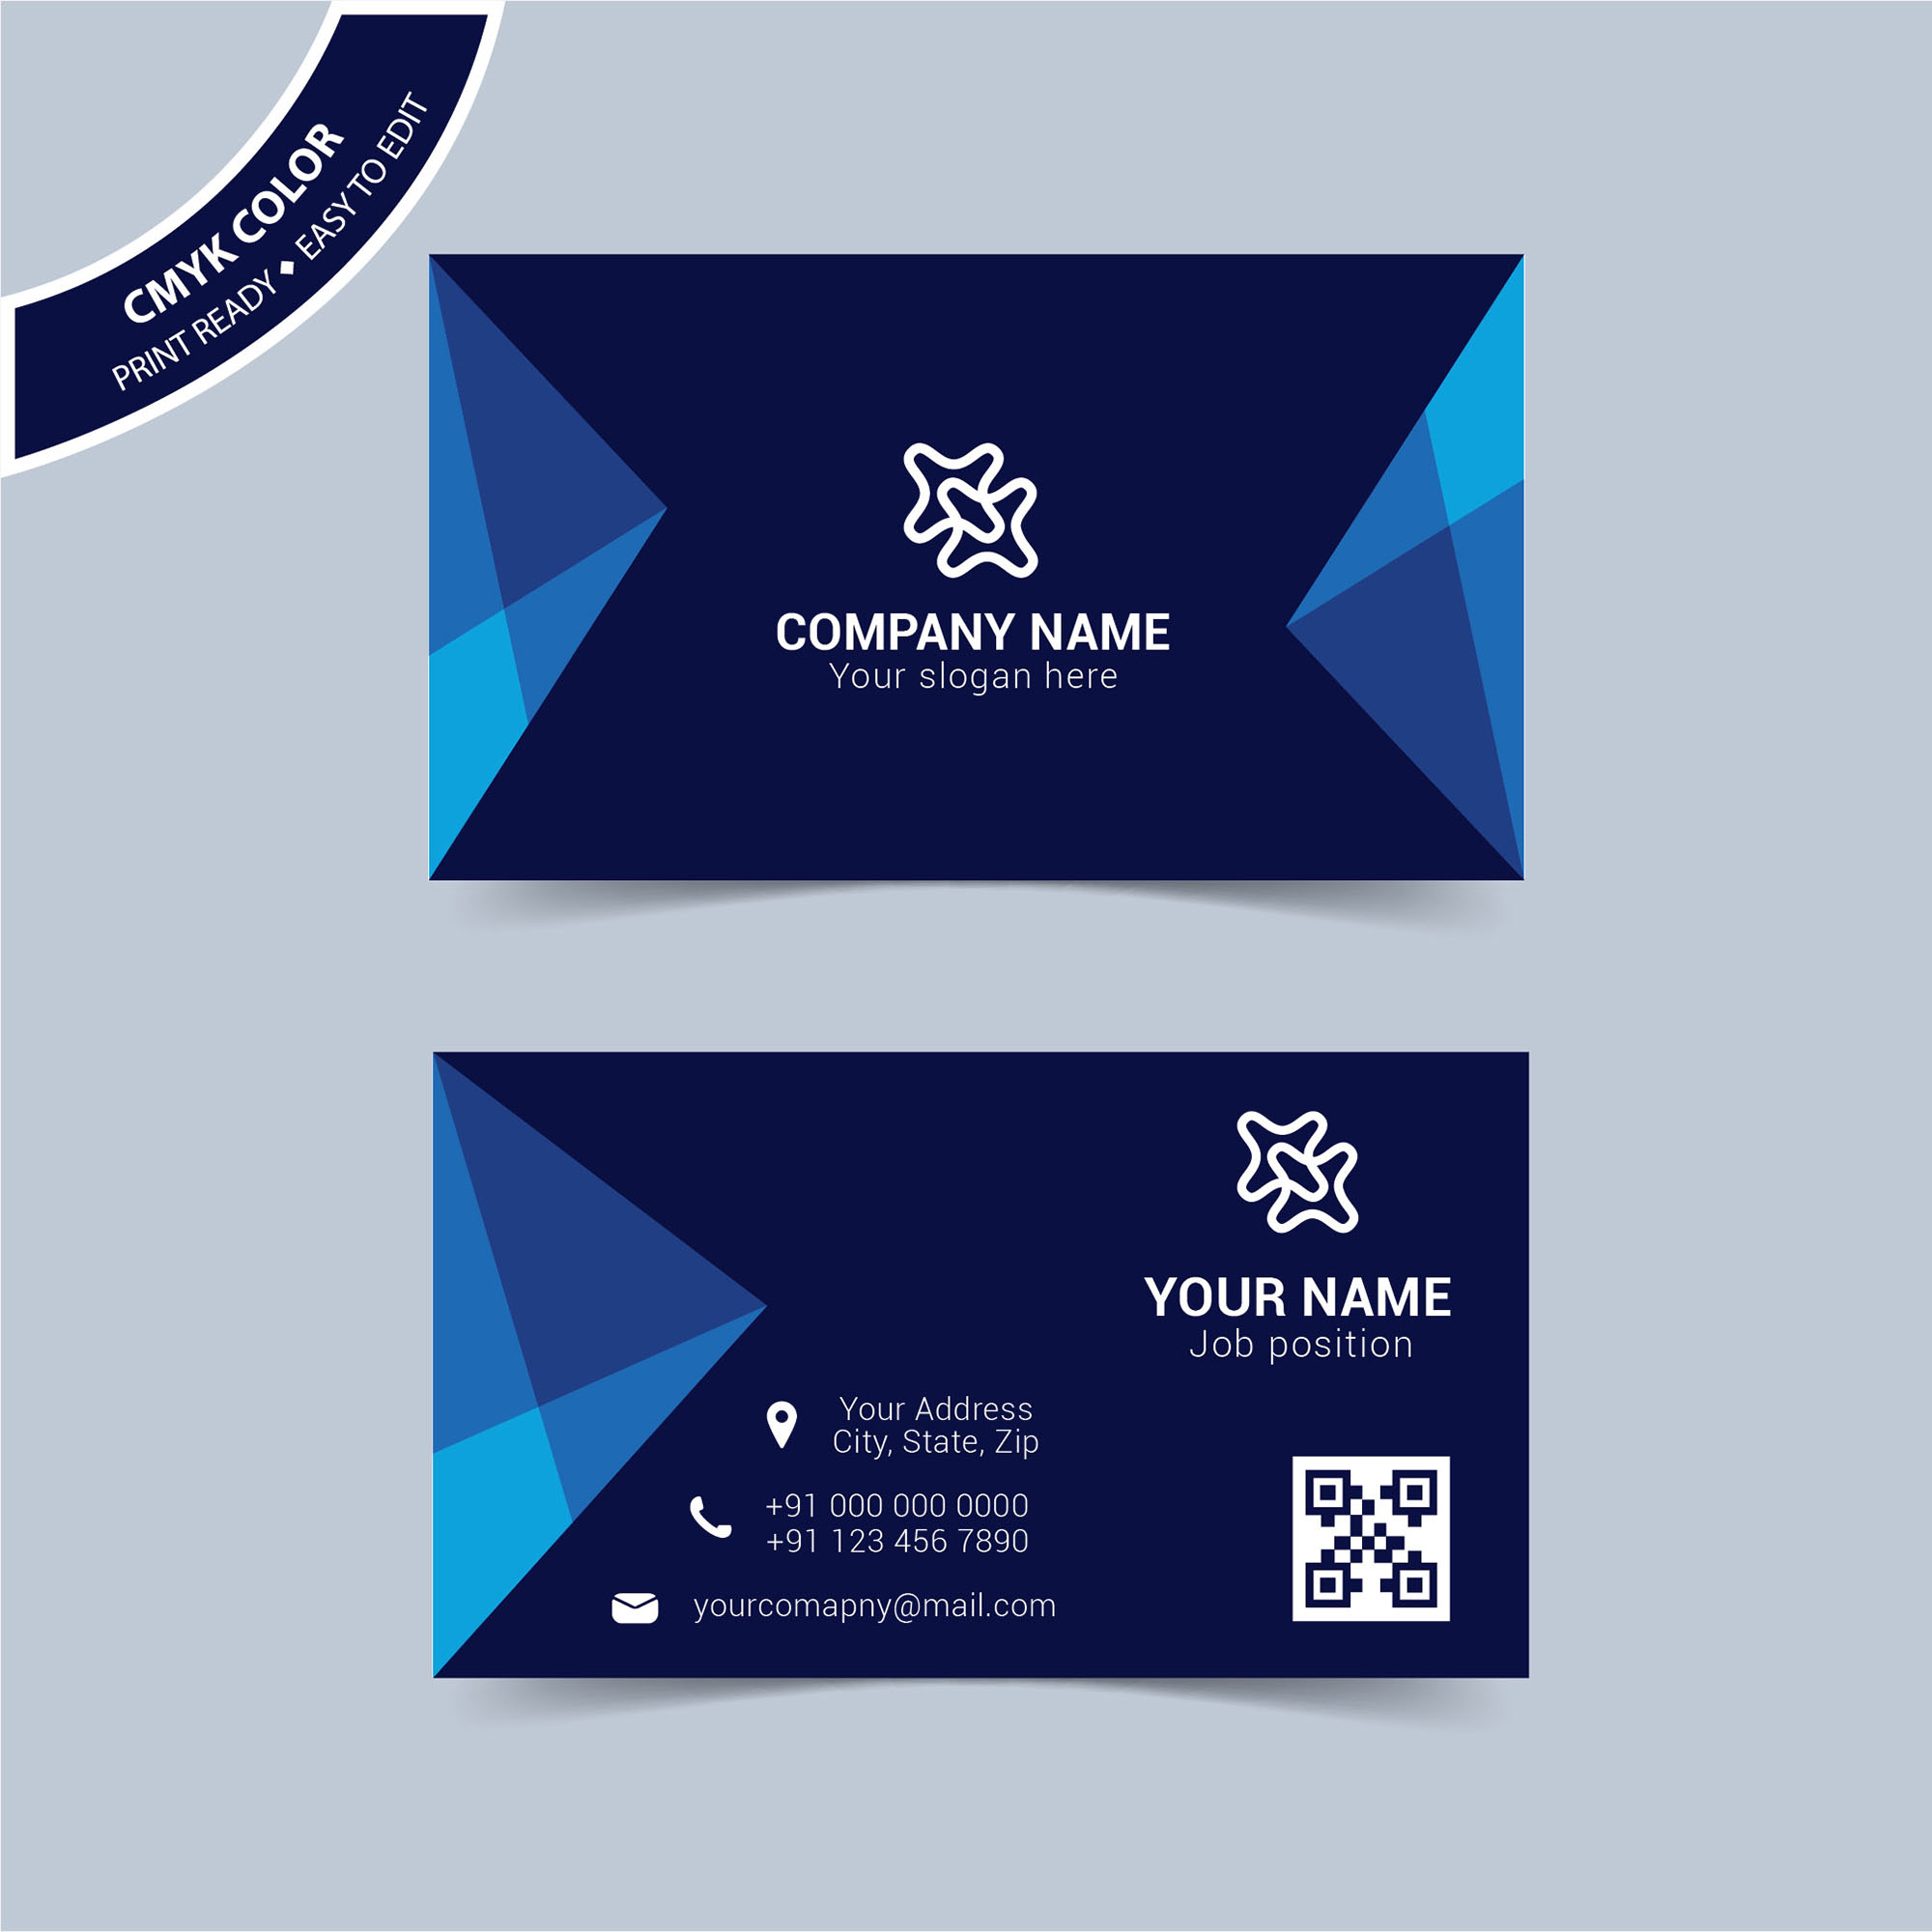 Modern blue business card template free download wisxi business card business cards business card design business card template design templates cheaphphosting Image collections